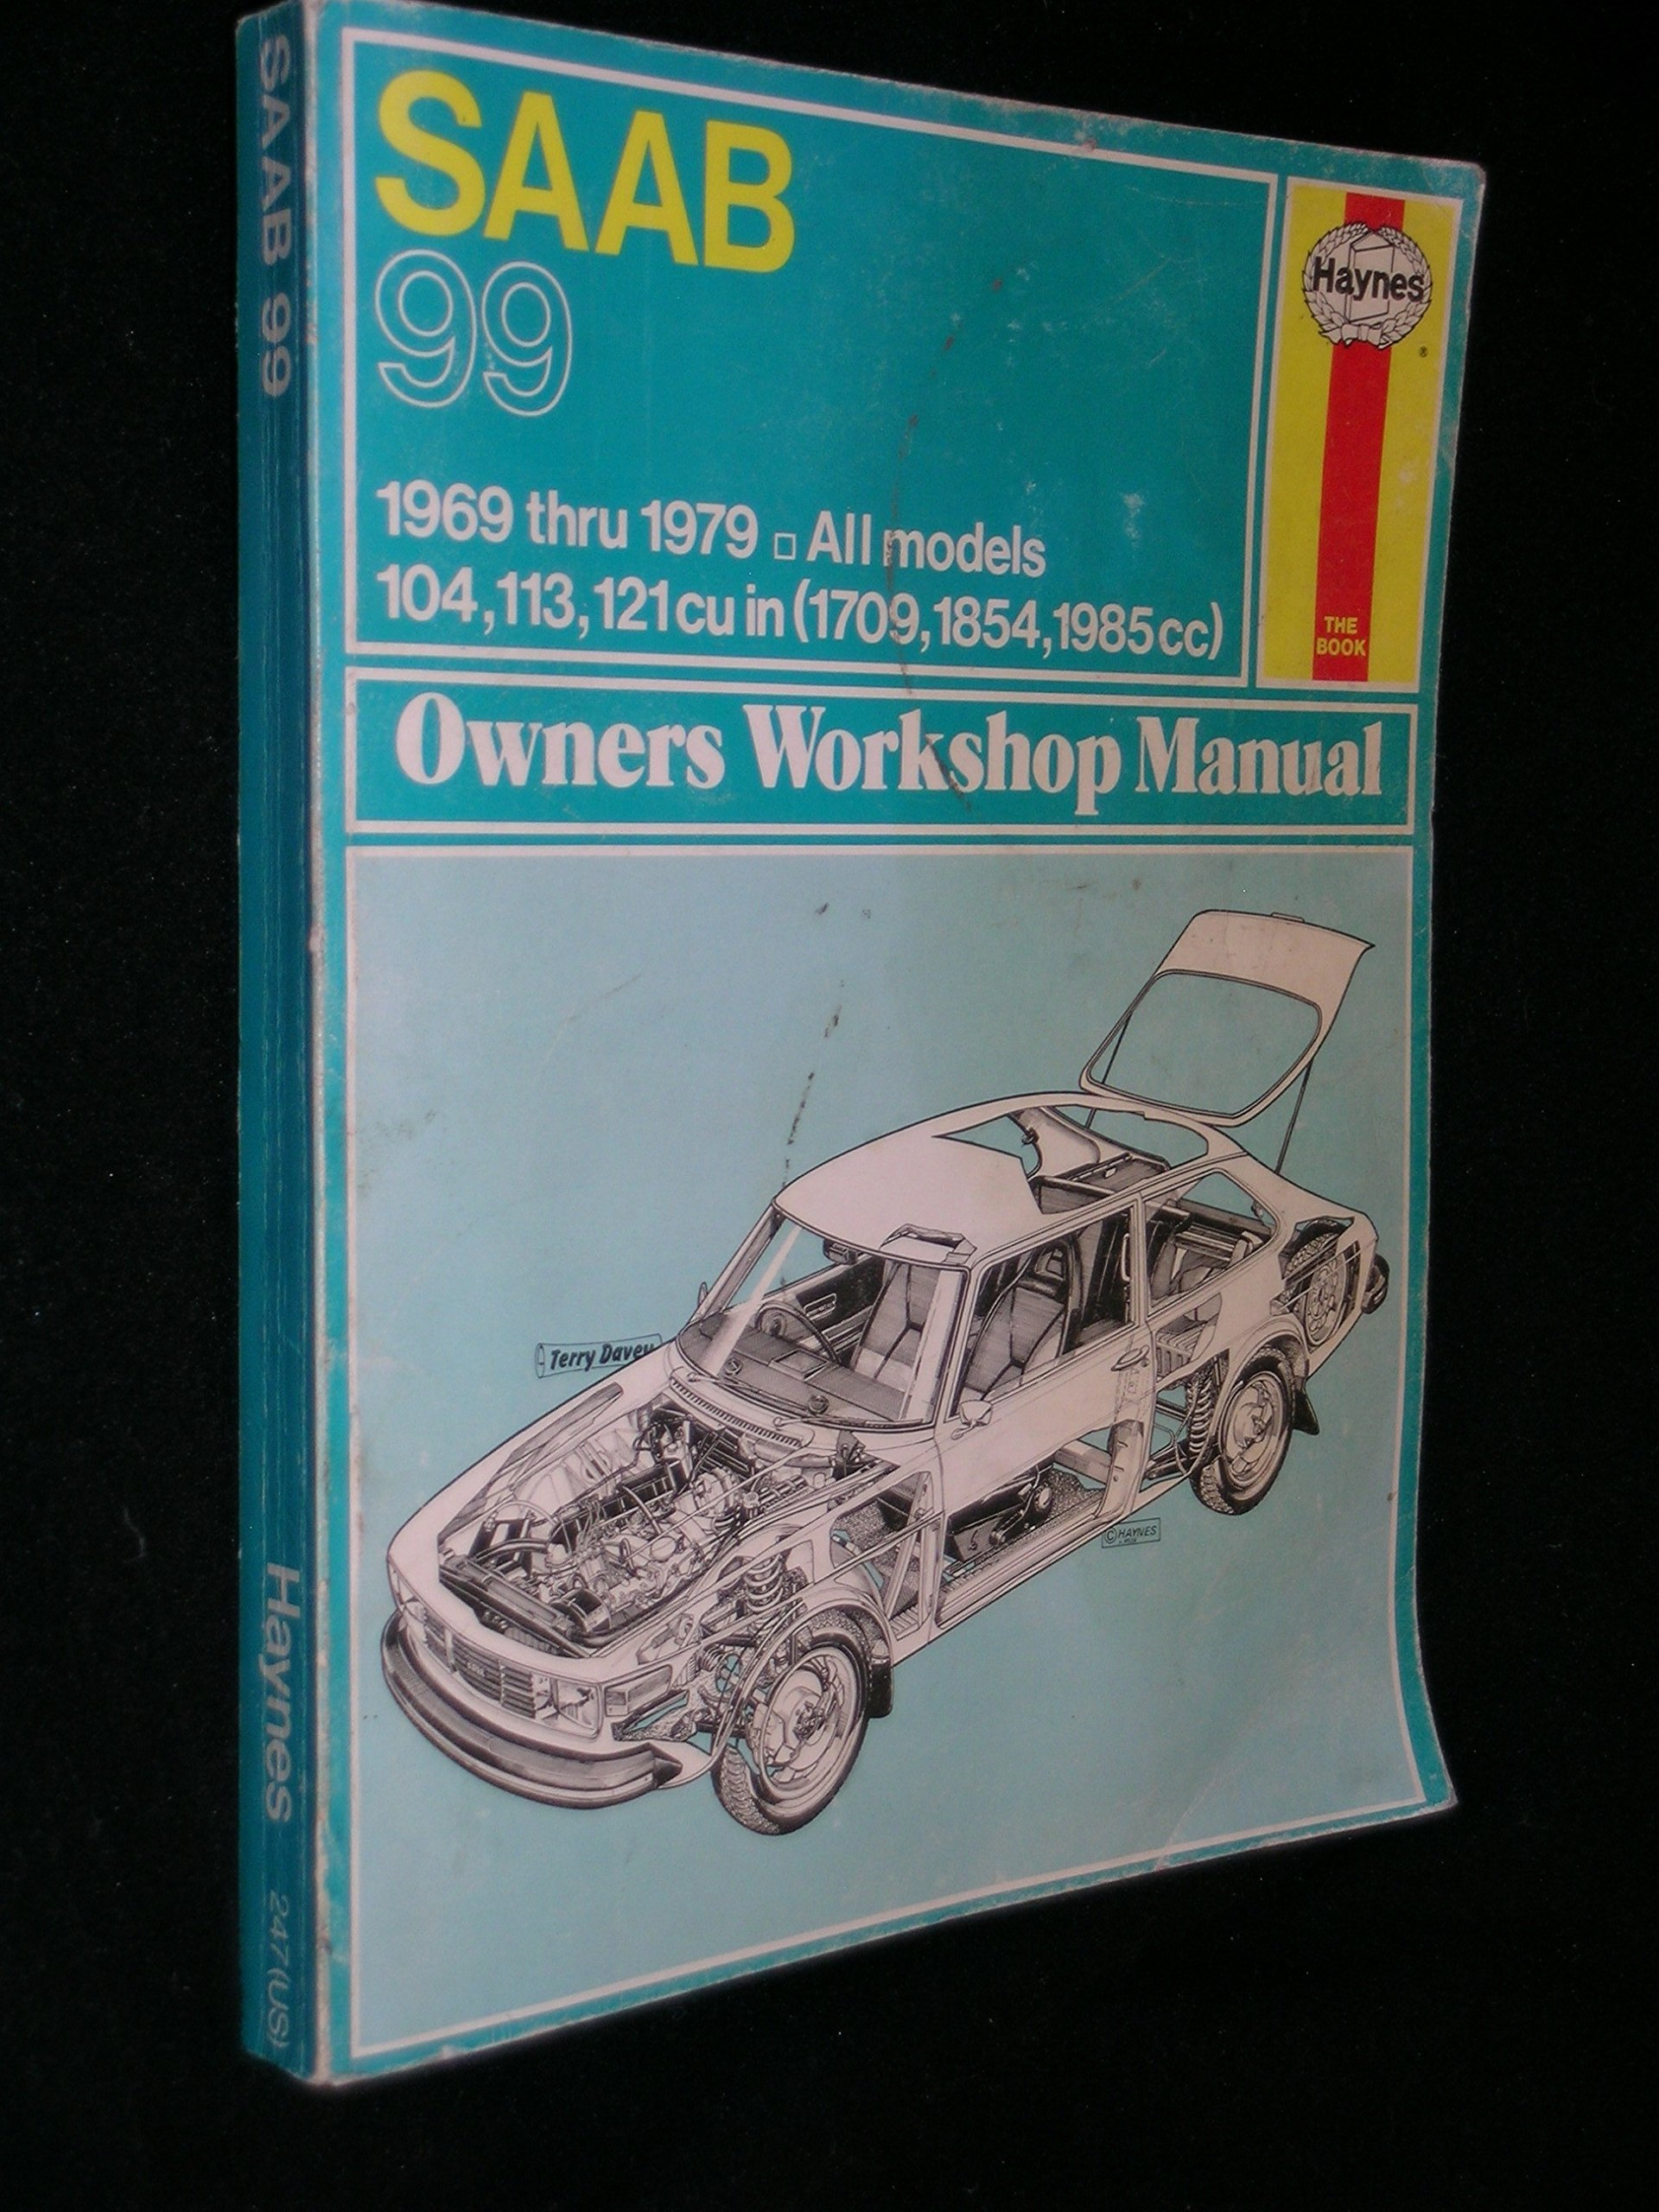 Saab 99 Owner's Workshop Manual: J. H. Haynes, Peter G. Strasman:  9780856965142: Amazon.com: Books